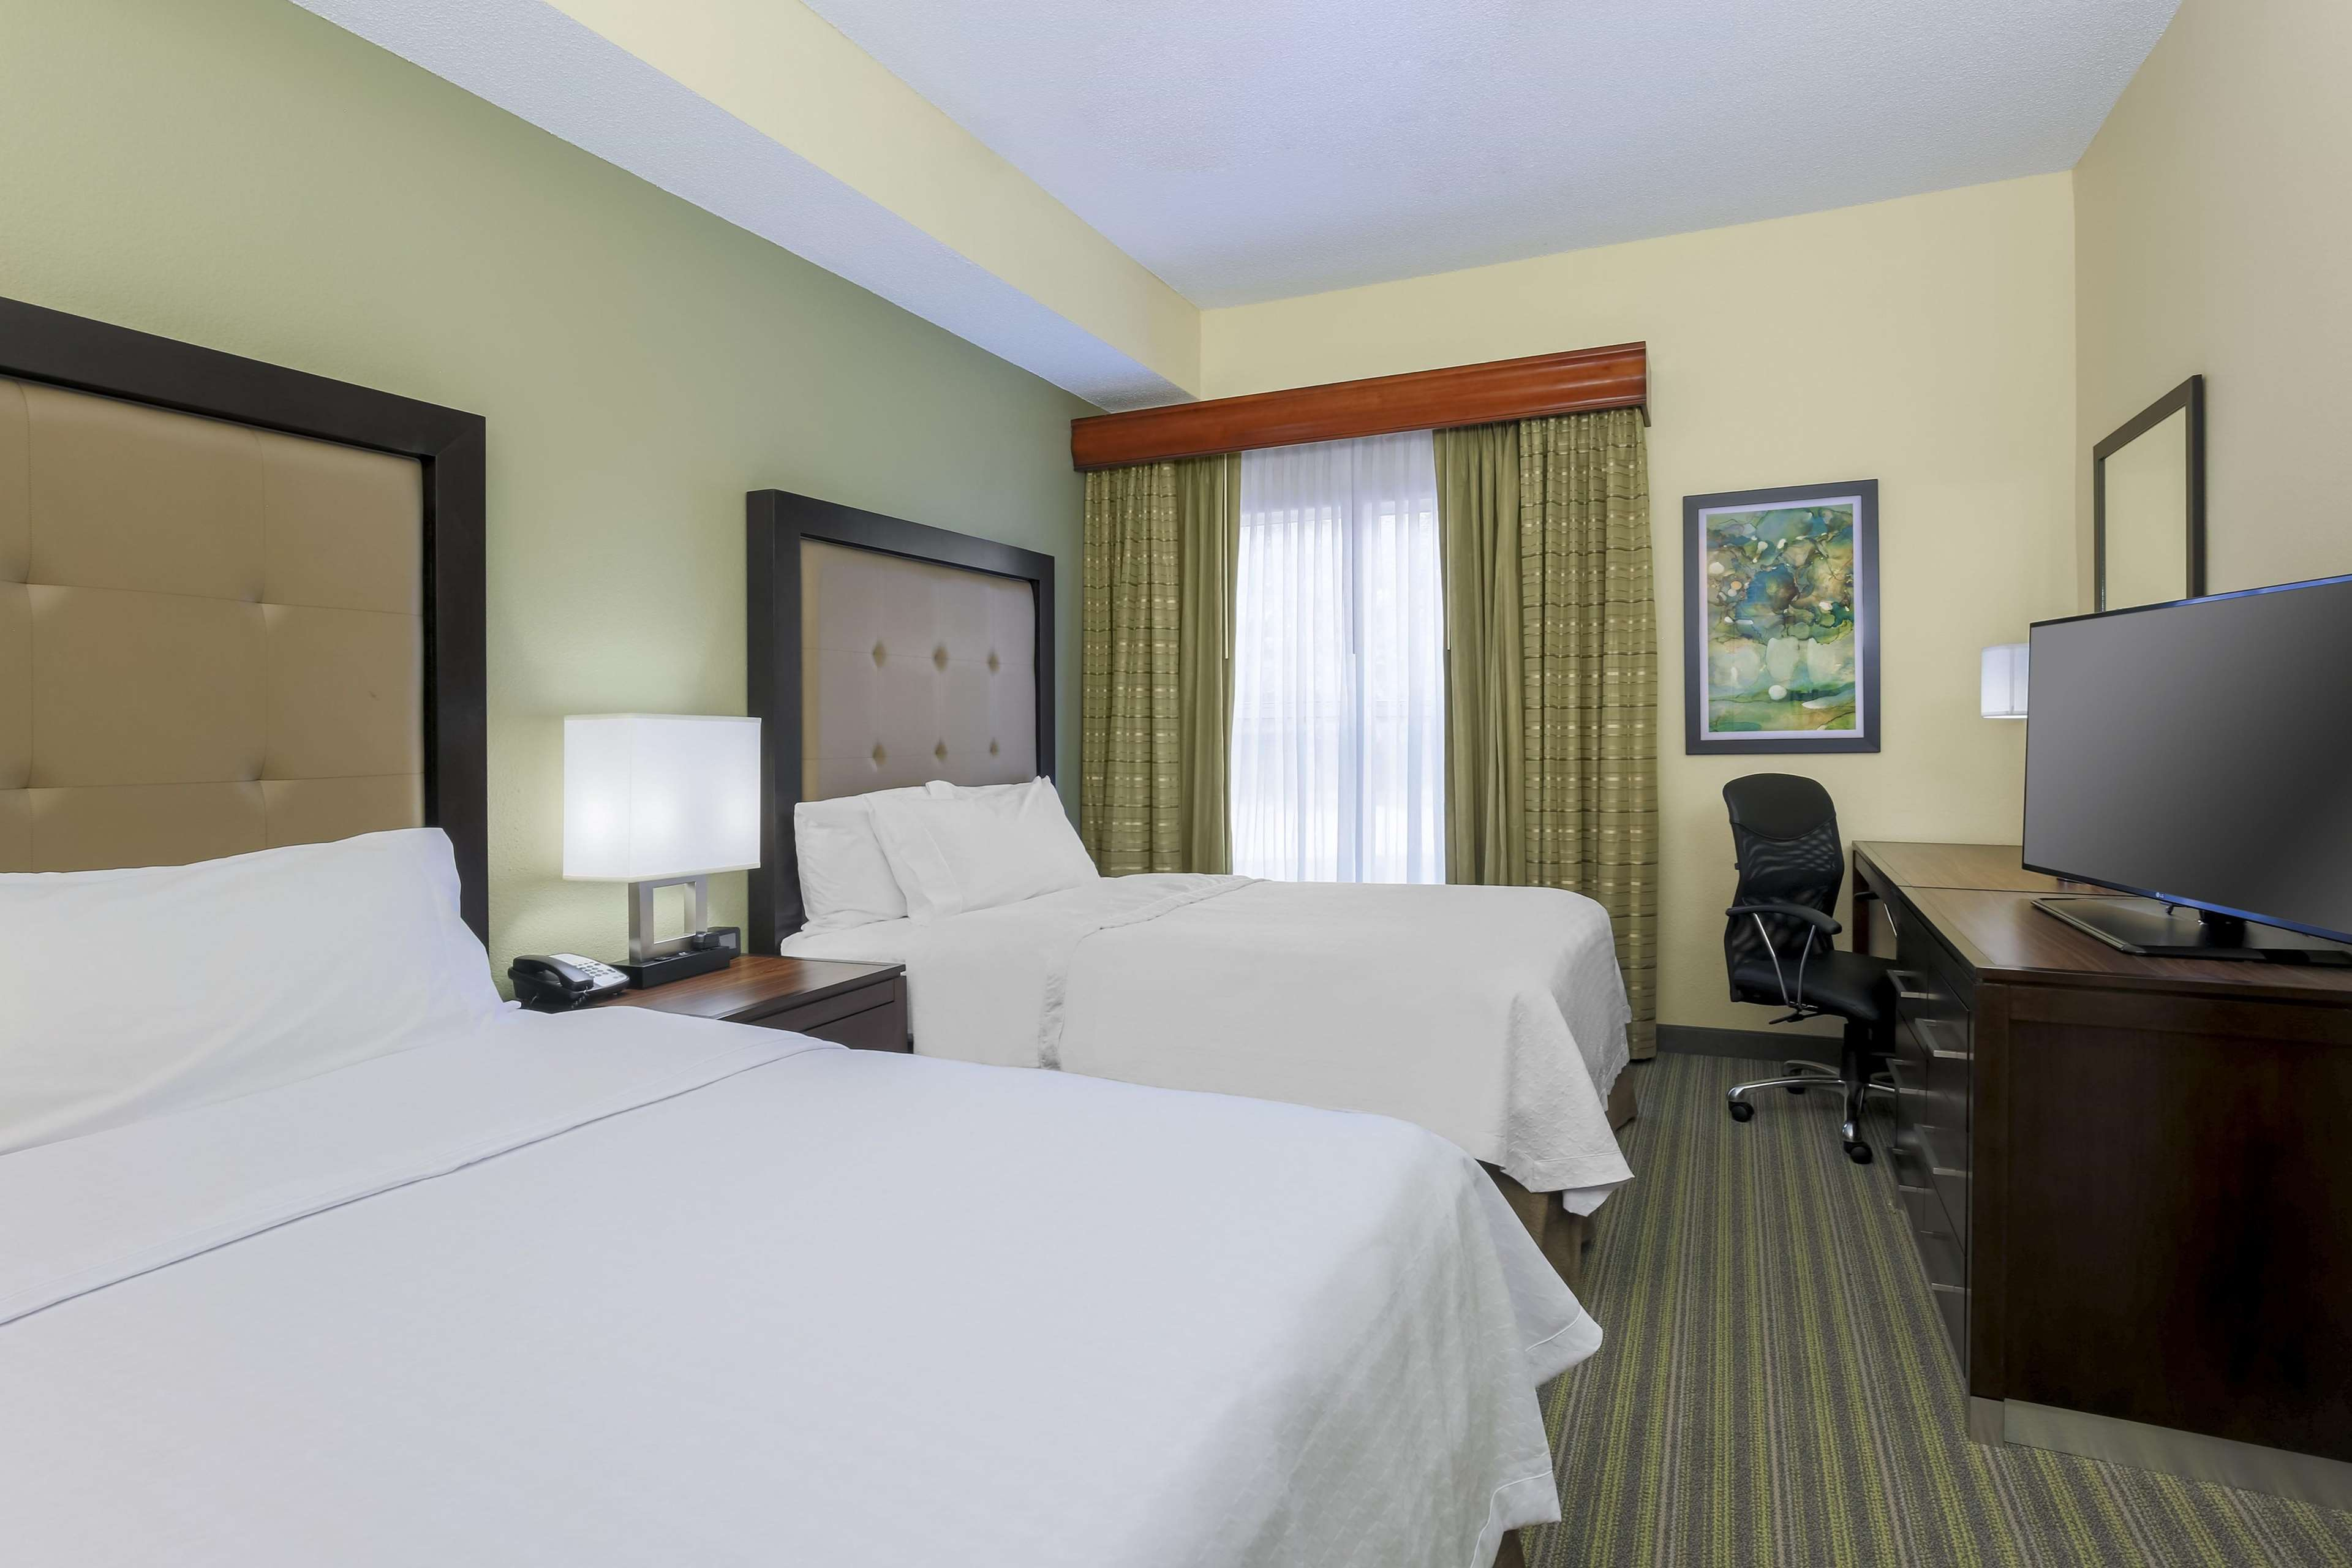 Homewood Suites by Hilton St. Petersburg Clearwater image 8